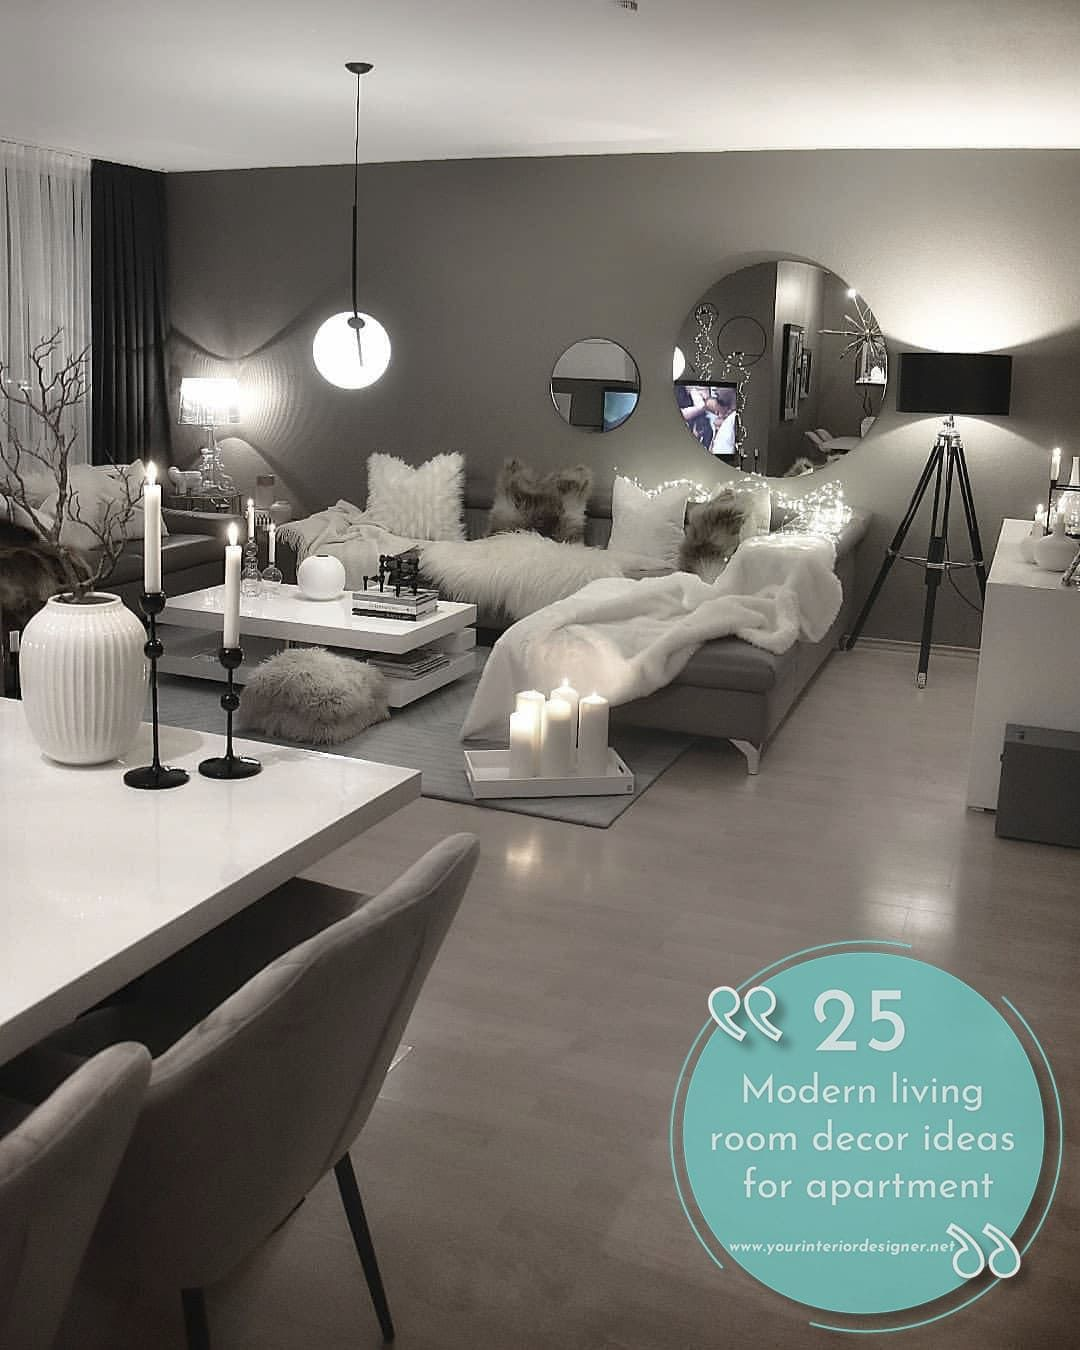 We have created a gallery of 32 pictures that show you how modern residents of different countries decorate their living rooms. Furniture, lighting systems, tables and other accessories created with these lounge rooms we aimed to inspire you. If you are thinking of renovating your living room, you should look at these pictures.